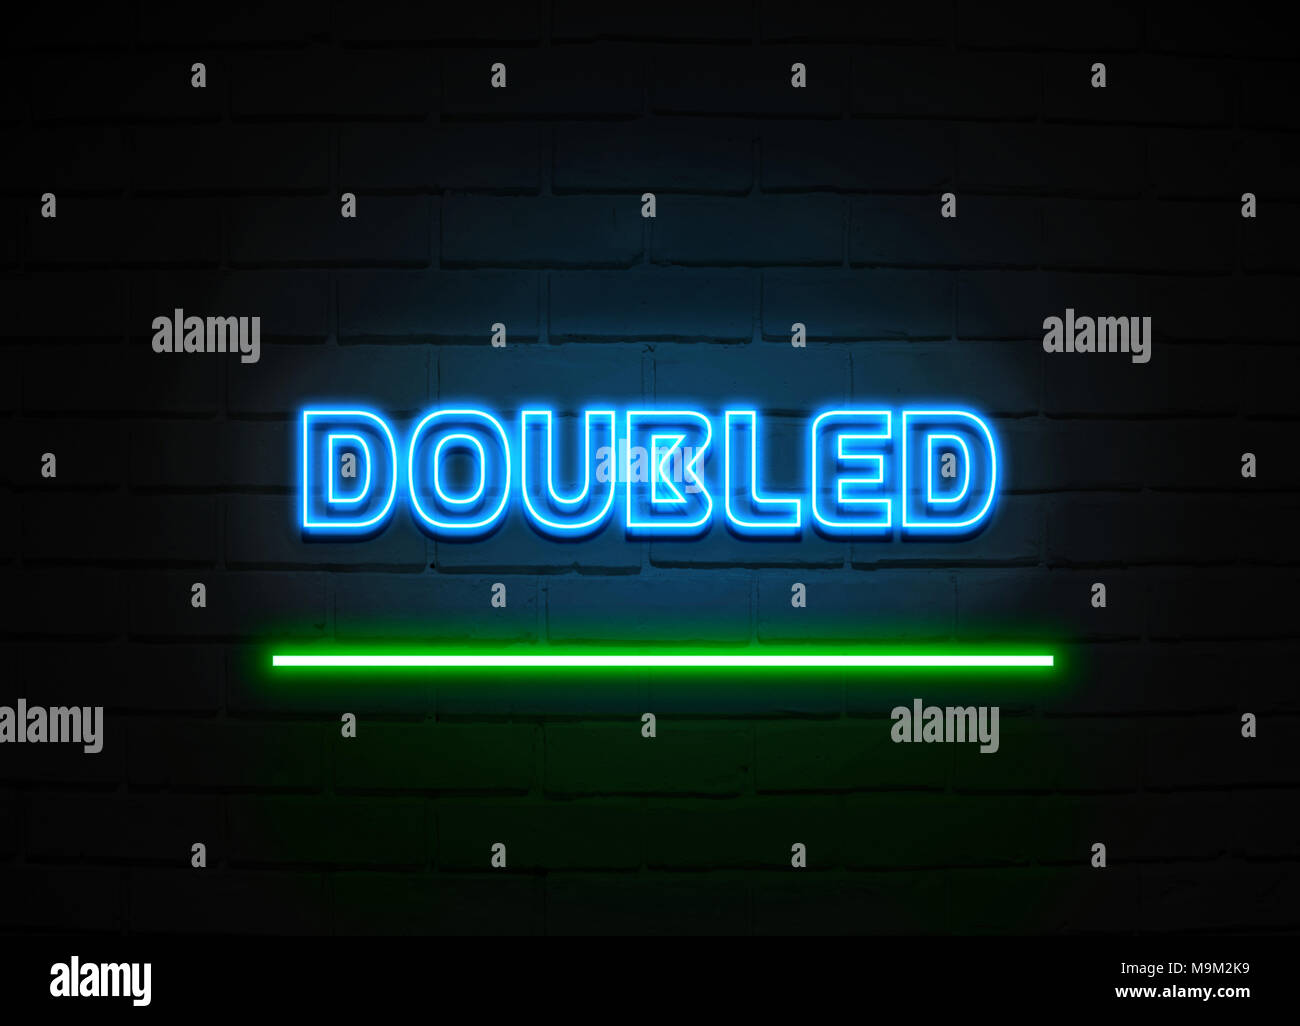 Doubled neon sign - Glowing Neon Sign on brickwall wall - 3D rendered royalty free stock illustration. - Stock Image